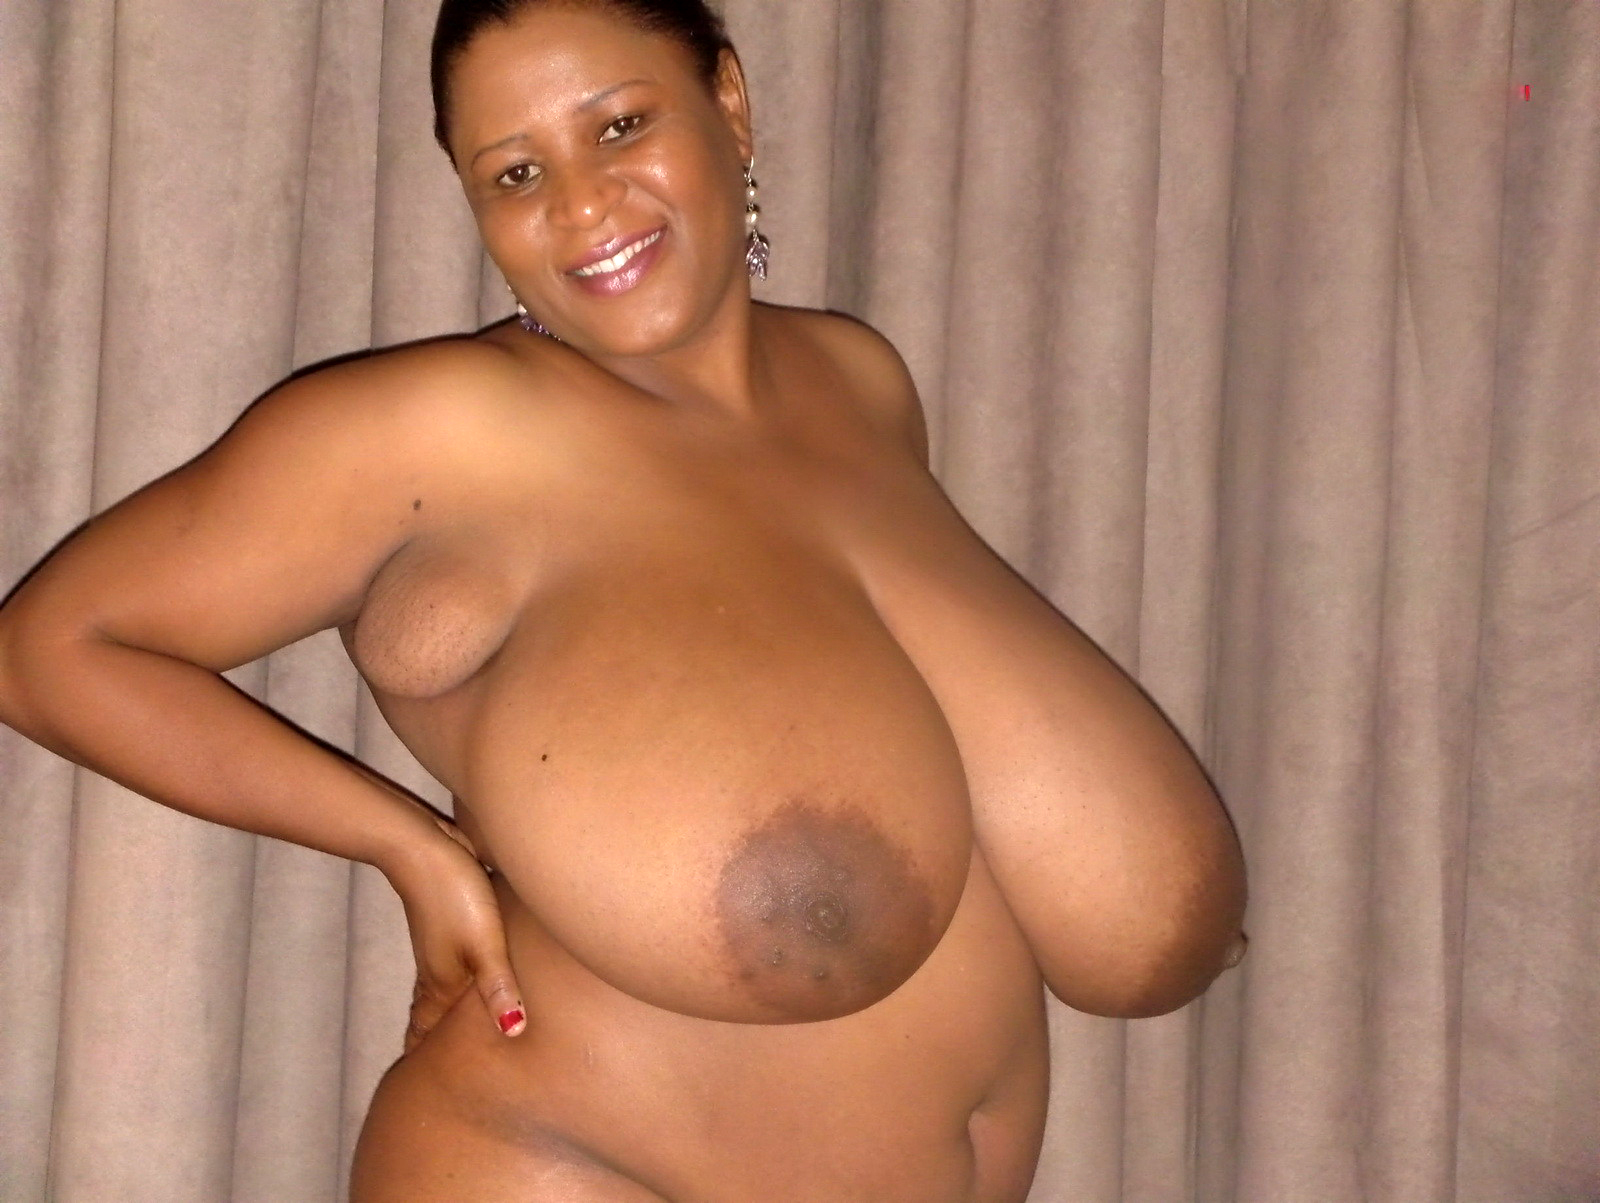 Black granny big tits confirm